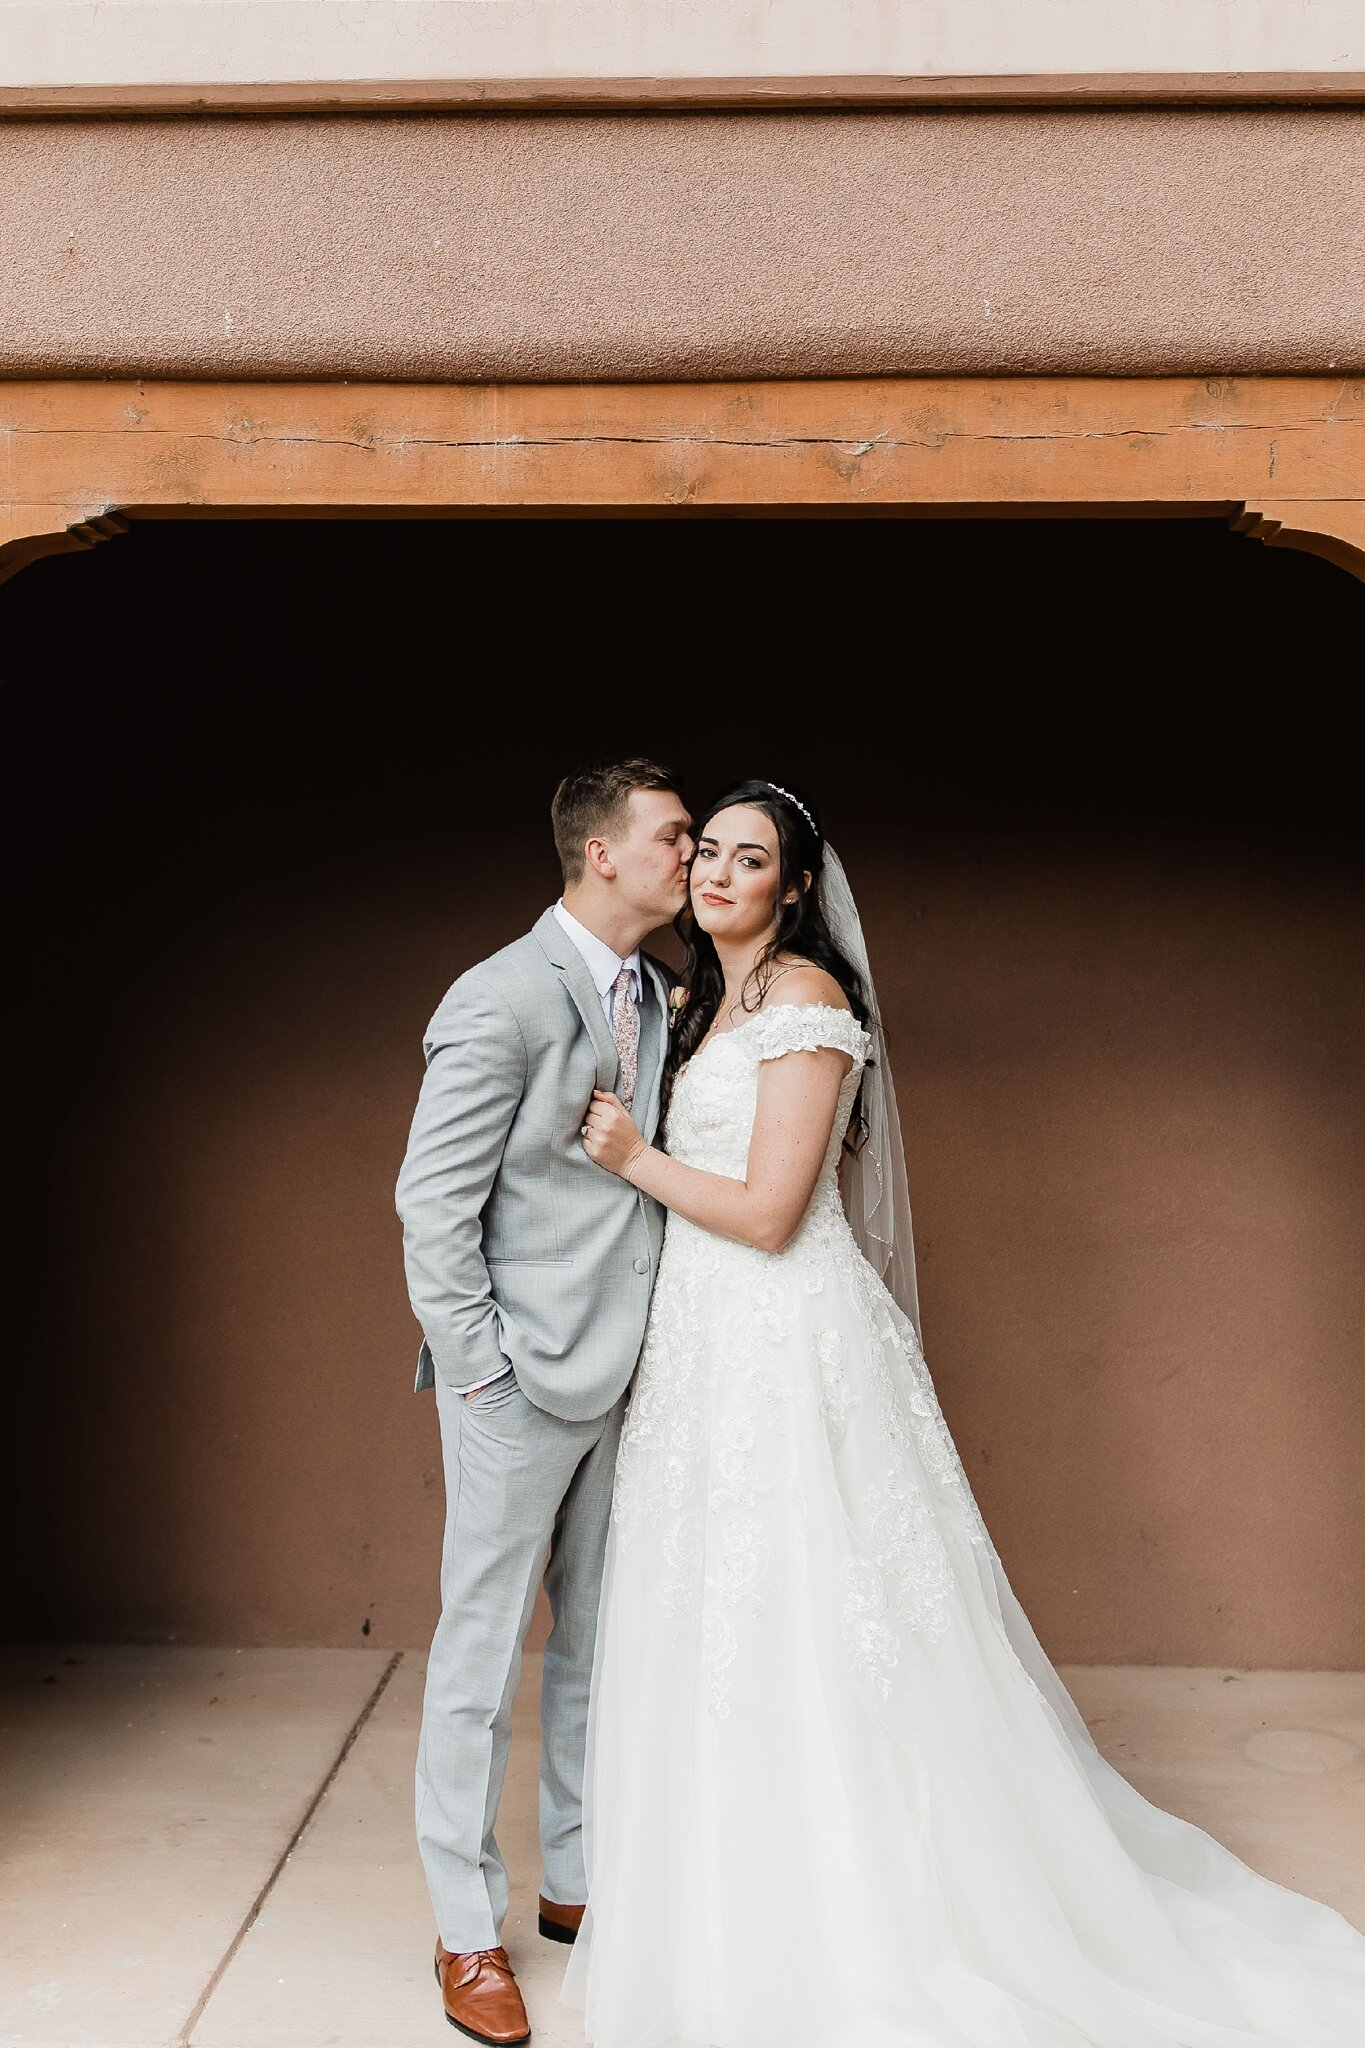 Alicia+lucia+photography+-+albuquerque+wedding+photographer+-+santa+fe+wedding+photography+-+new+mexico+wedding+photographer+-+new+mexico+wedding+-+wedding+-+bridal+gown+-+wedding+gown+-+ballgown+wedding+gown+-+ballgown+bridal+gown_0058.jpg